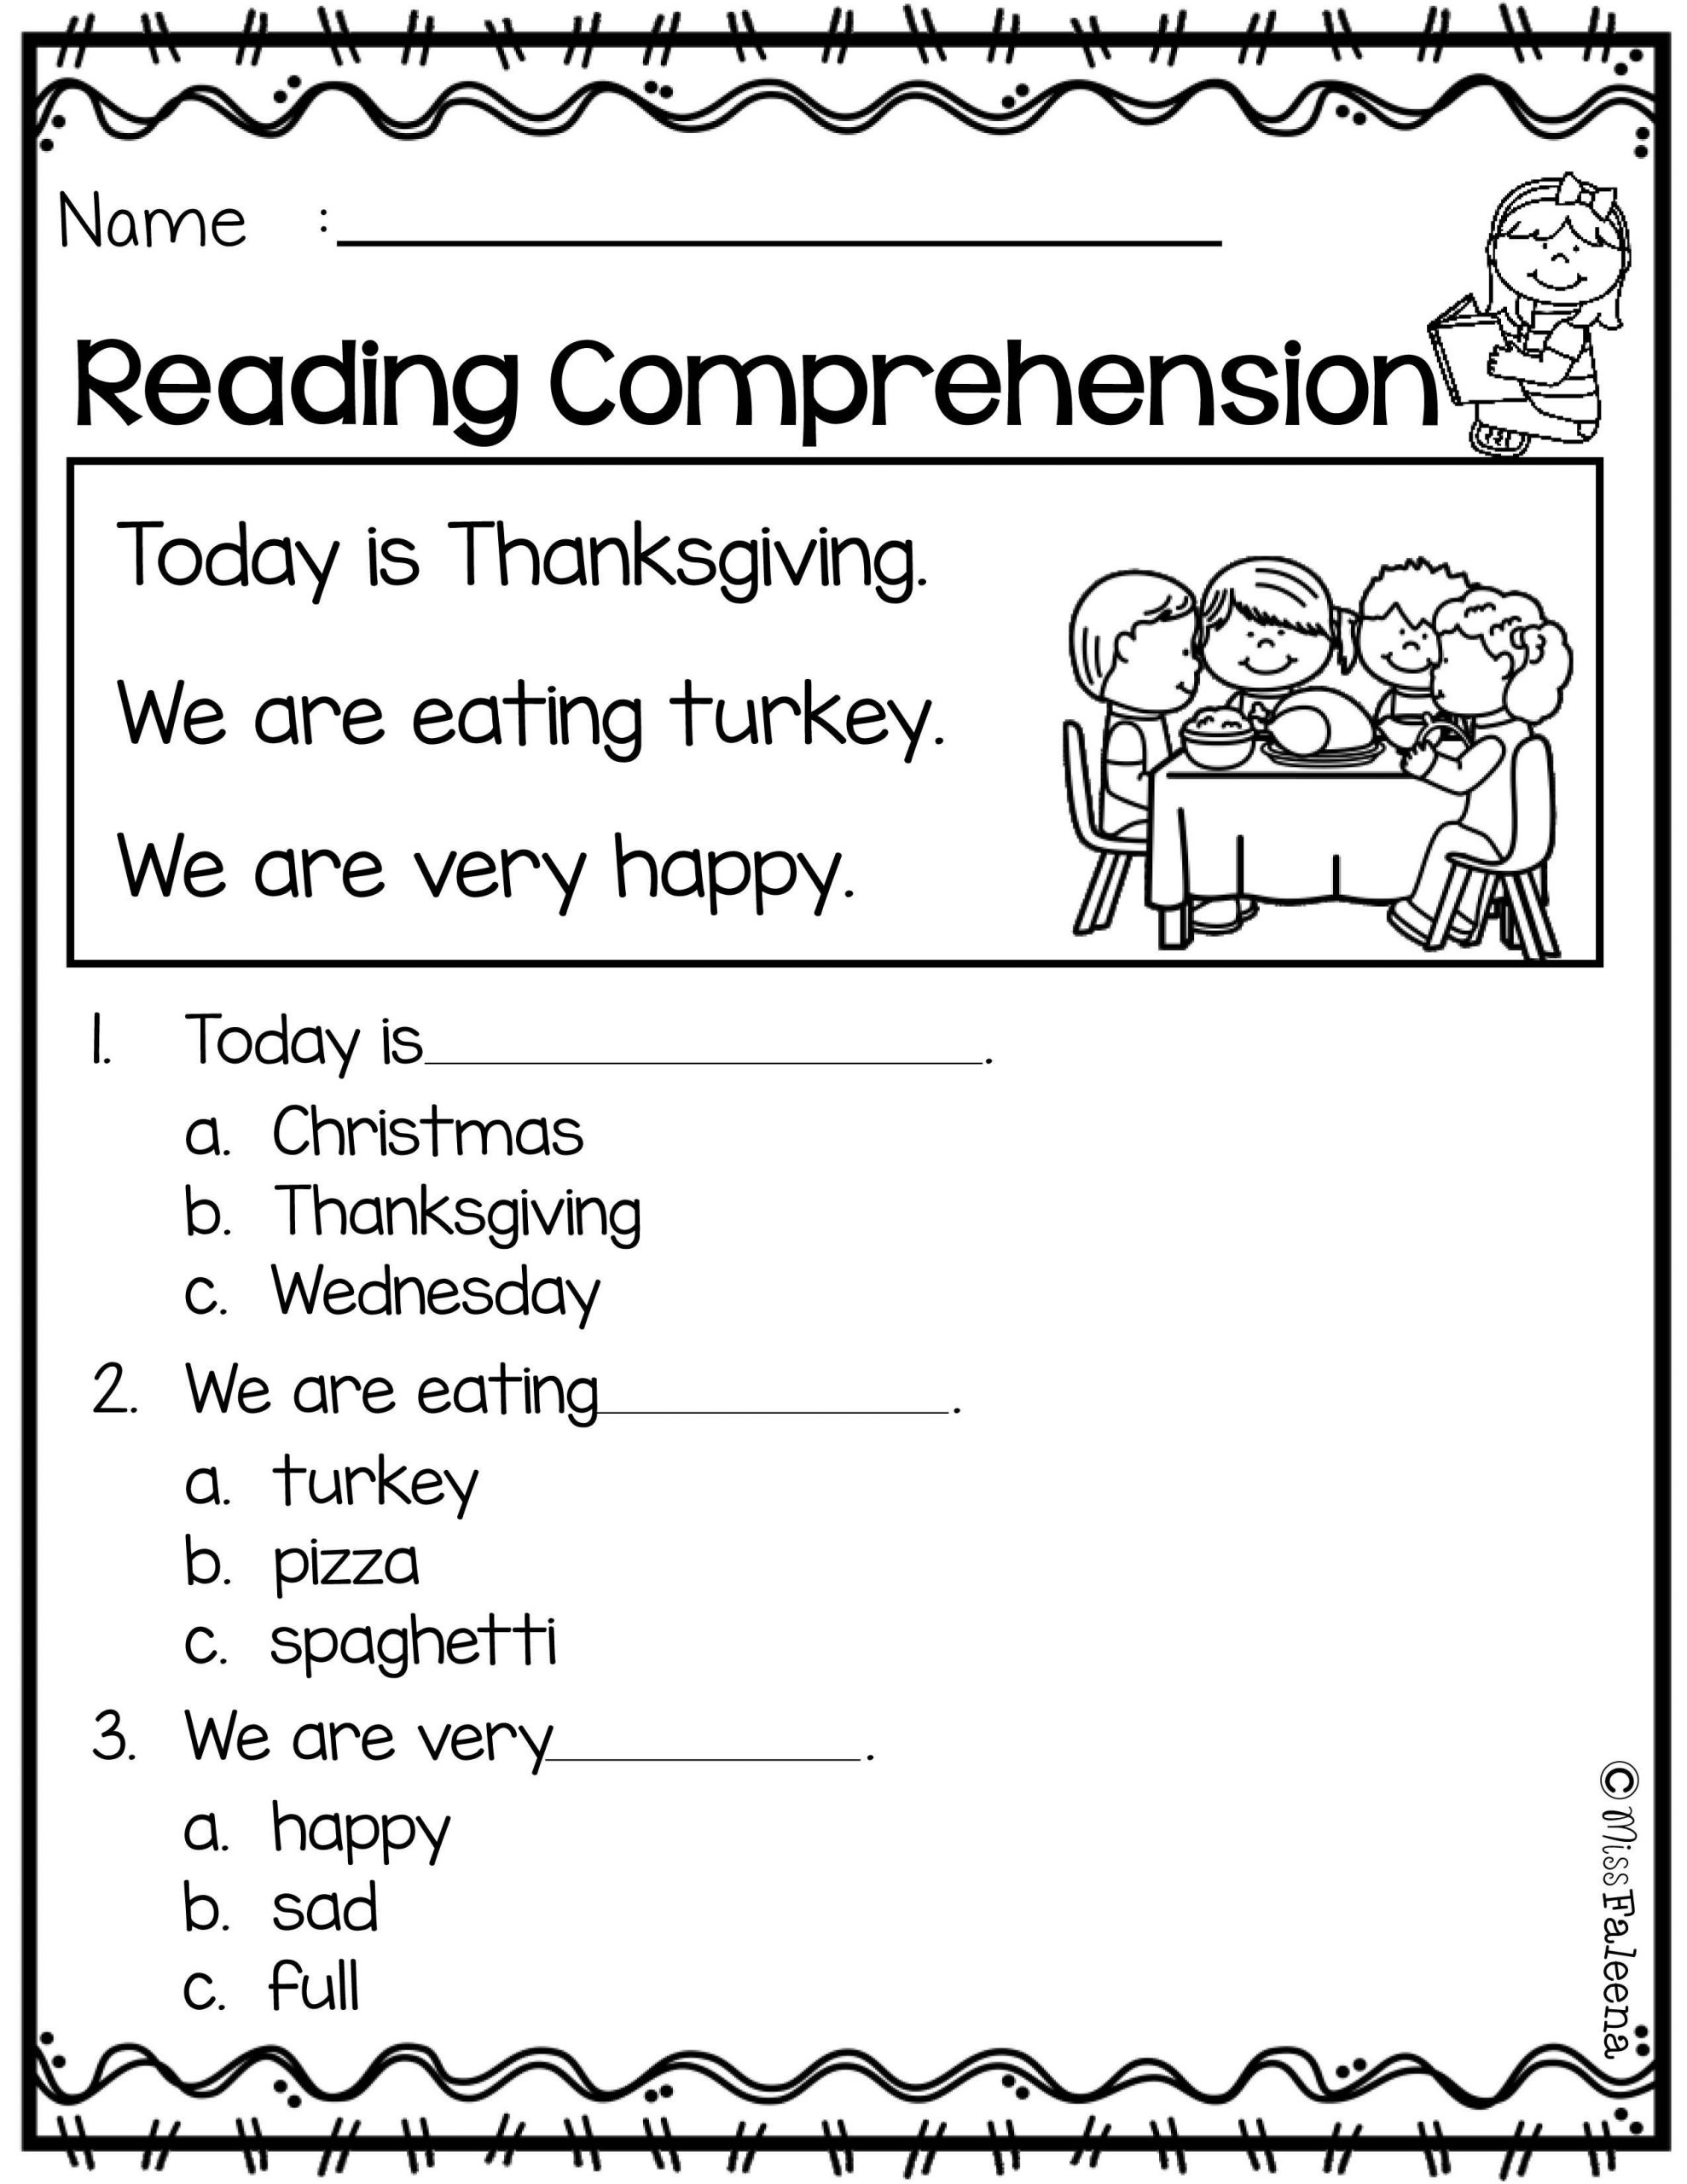 Kindergarten Reading Comprehension Worksheet November Reading Prehension is Suitable for Kindergarten